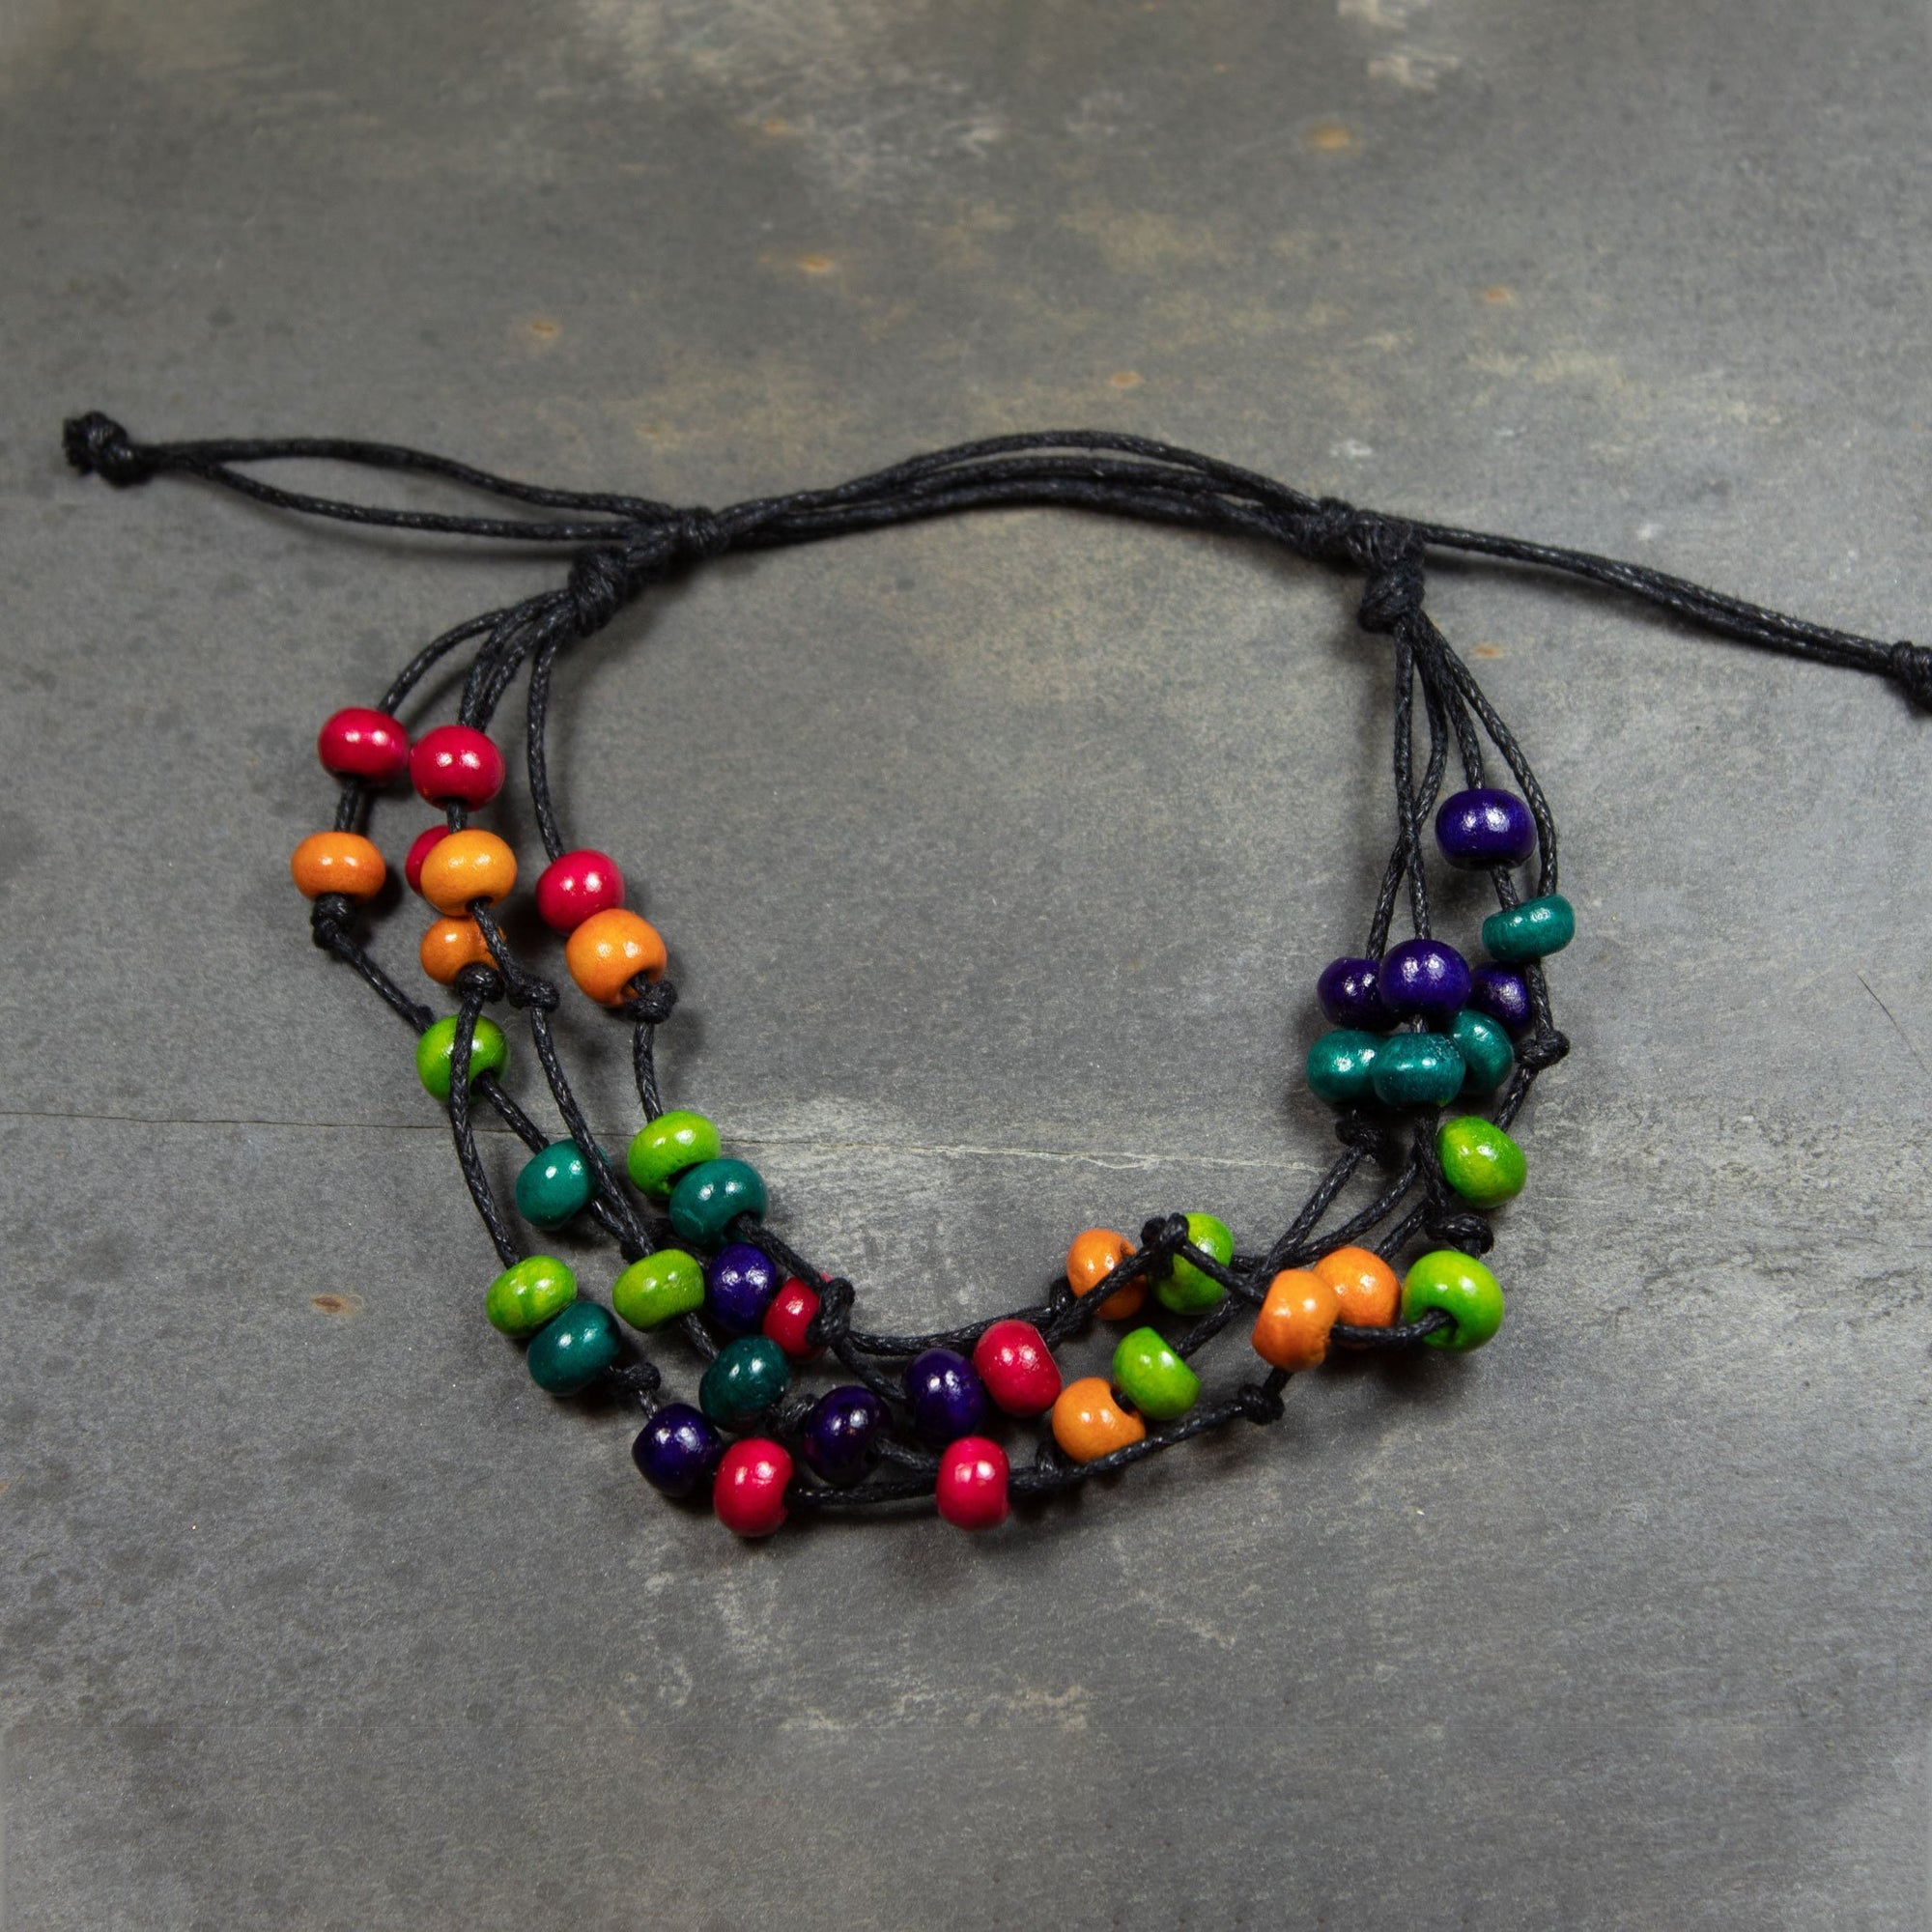 Wooden Bead & Multi-Strand Cord Bracelet | Bracelet - The Naughty Shrew